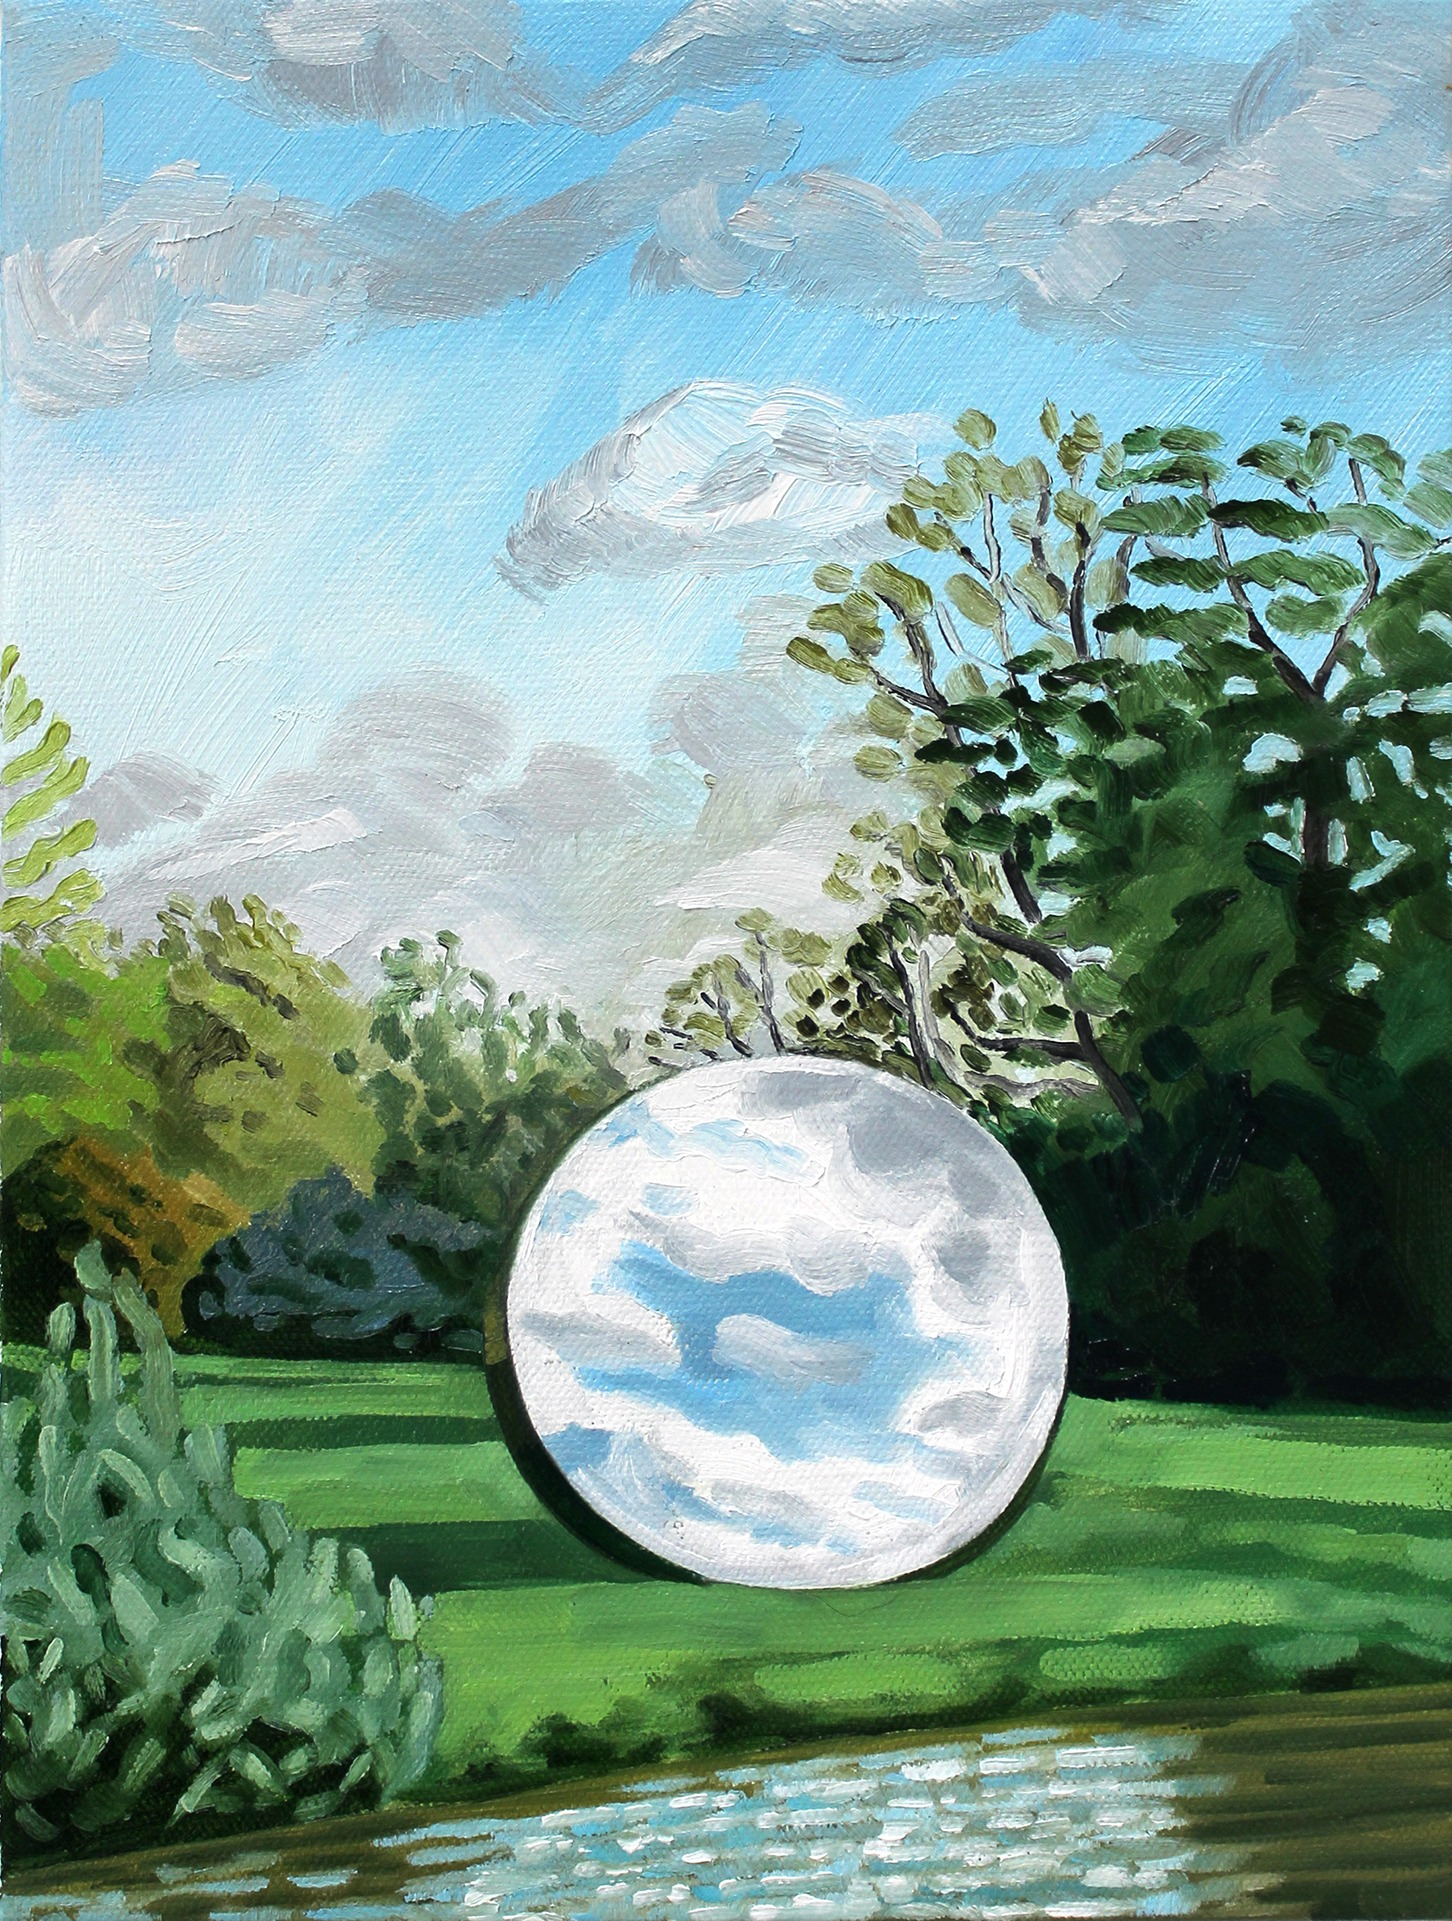 A painting by Lina Tharsing titled Sky Mirror, dated 2020.